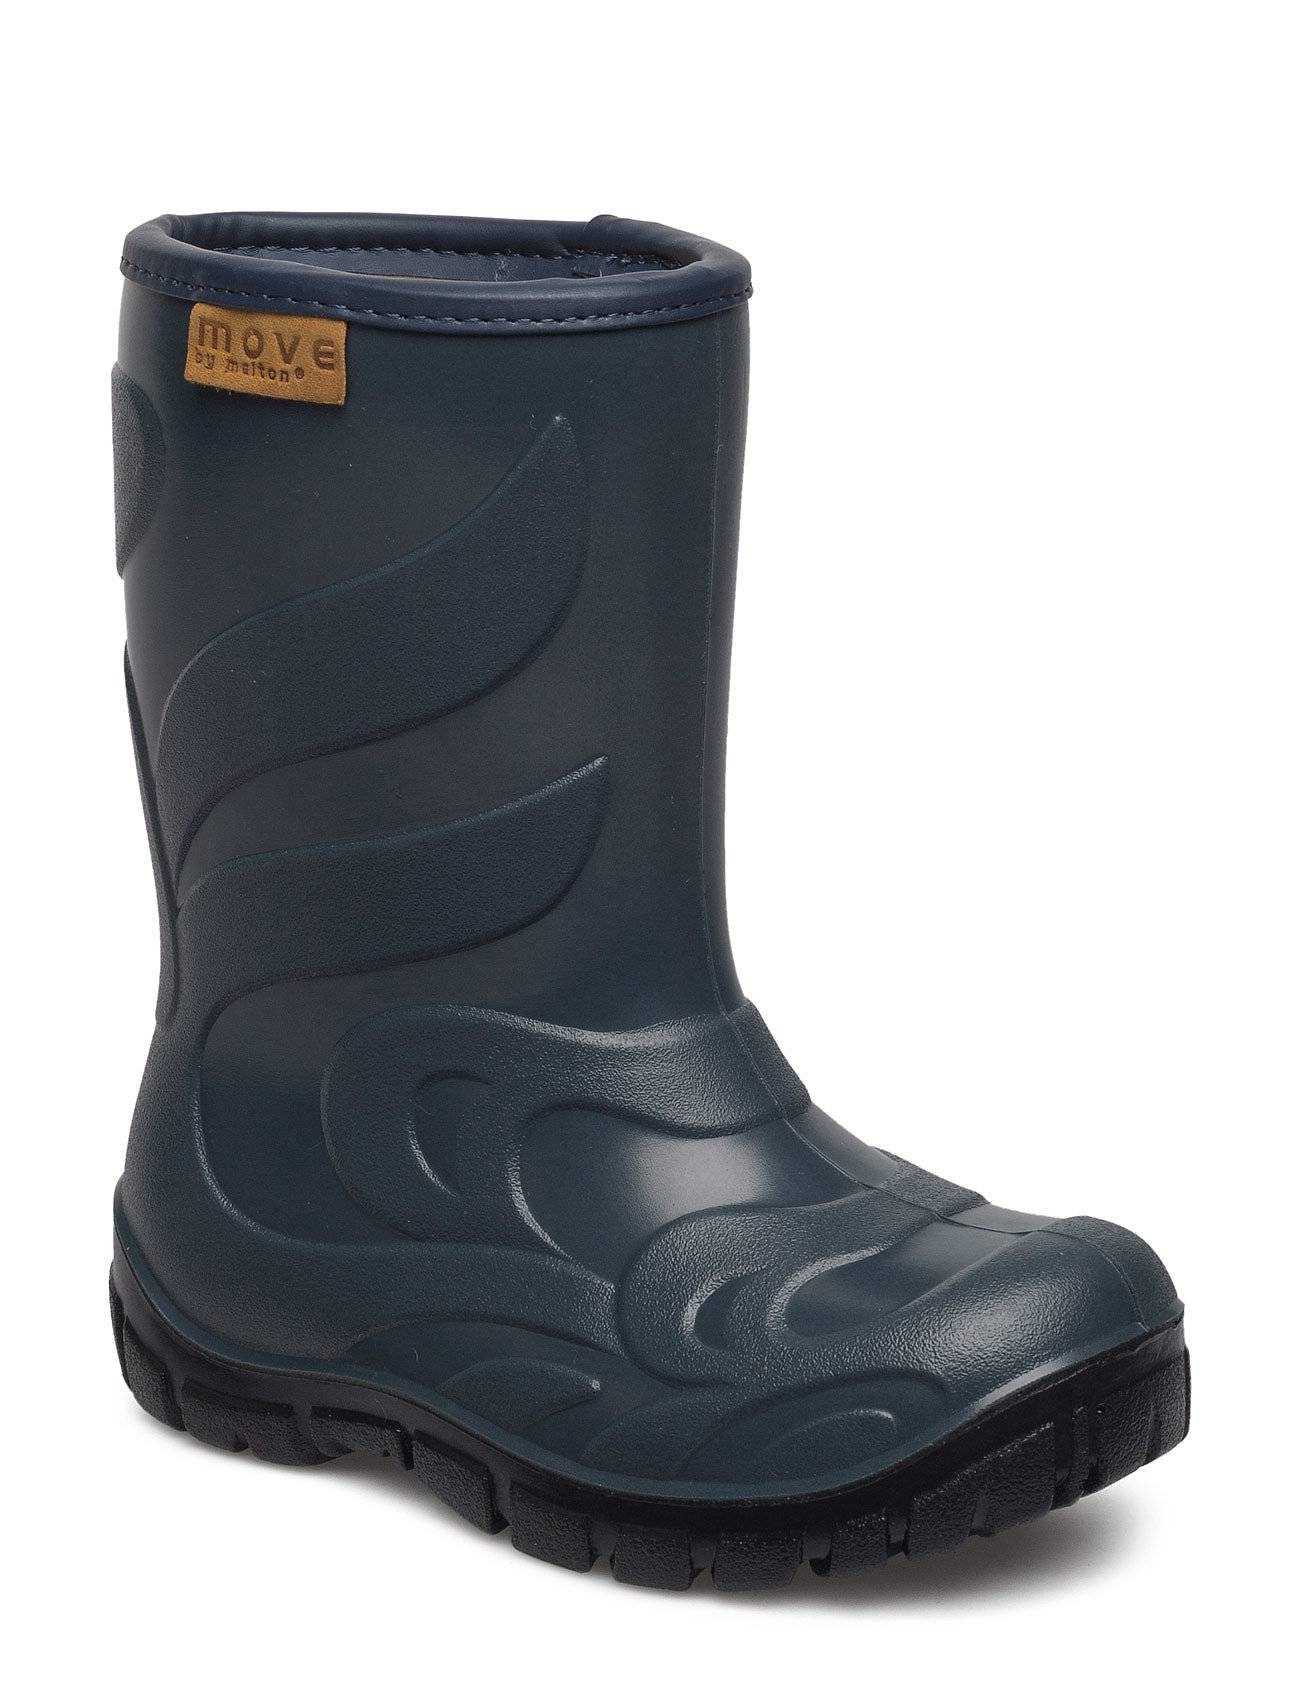 Move by Melton Unisex - Thermo Boot Warmlined